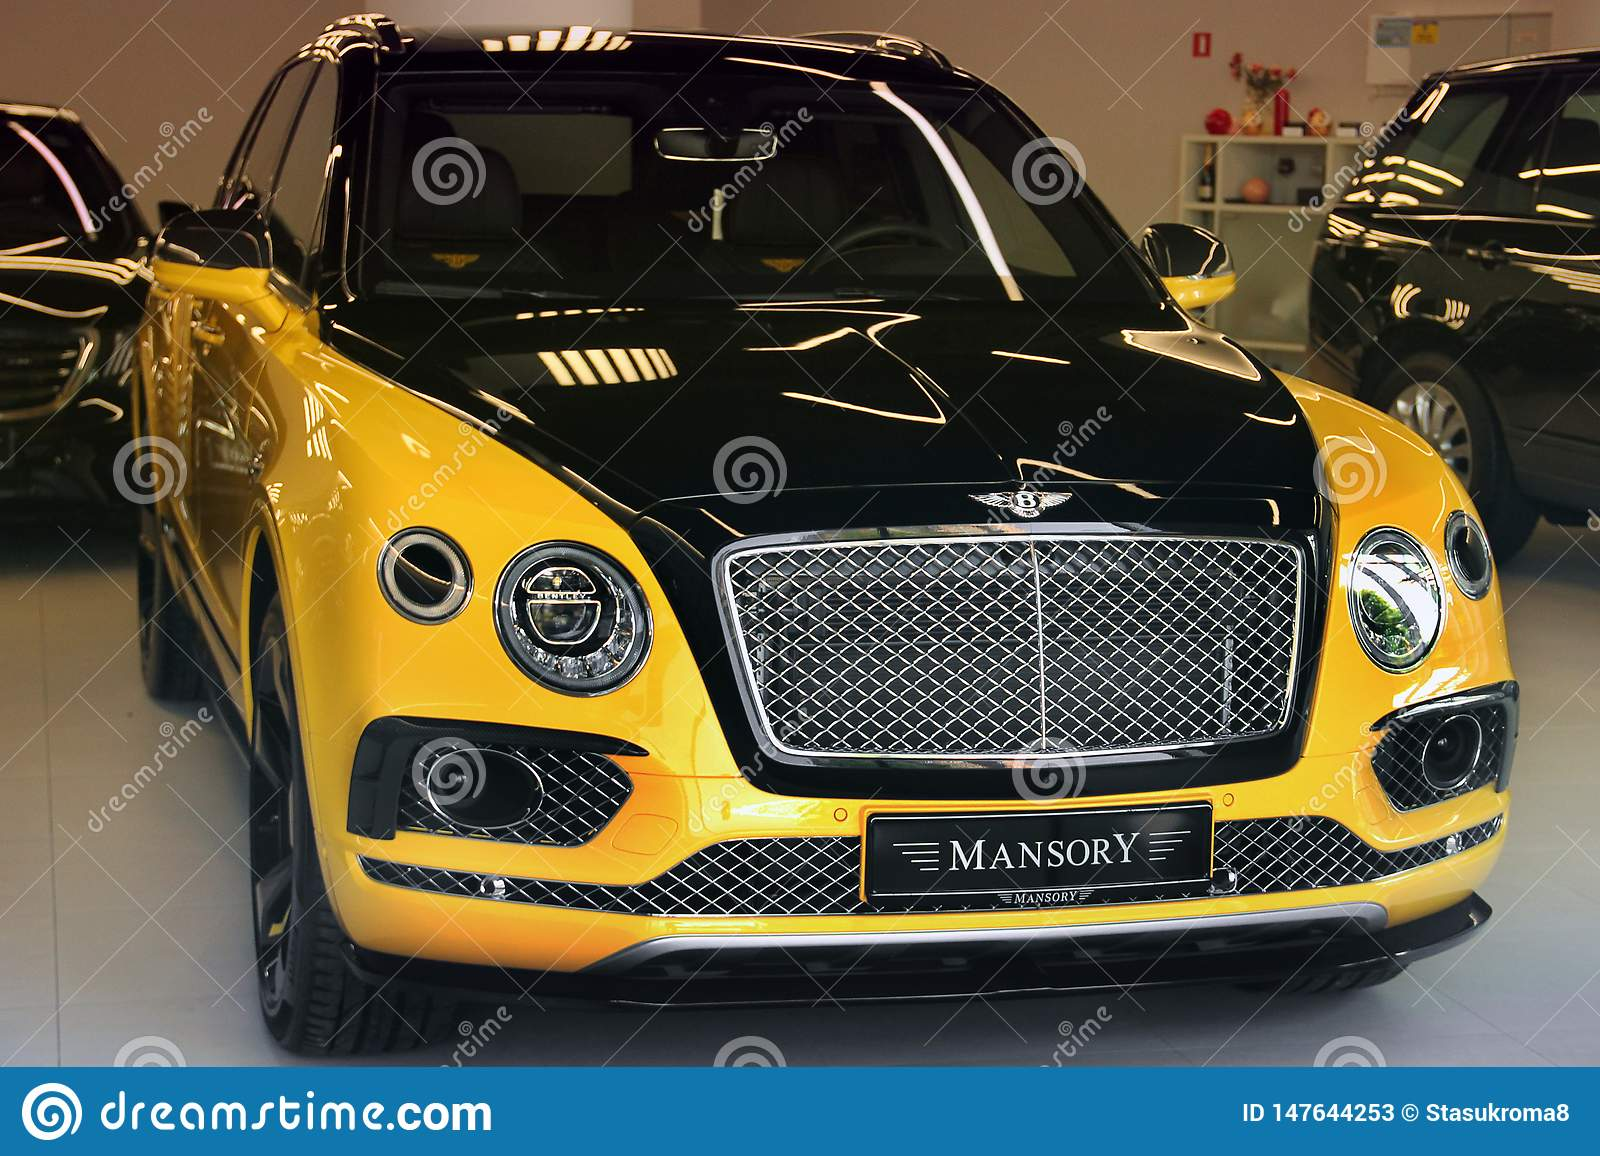 160 Yellow Bentley Photos Free Royalty Free Stock Photos From Dreamstime